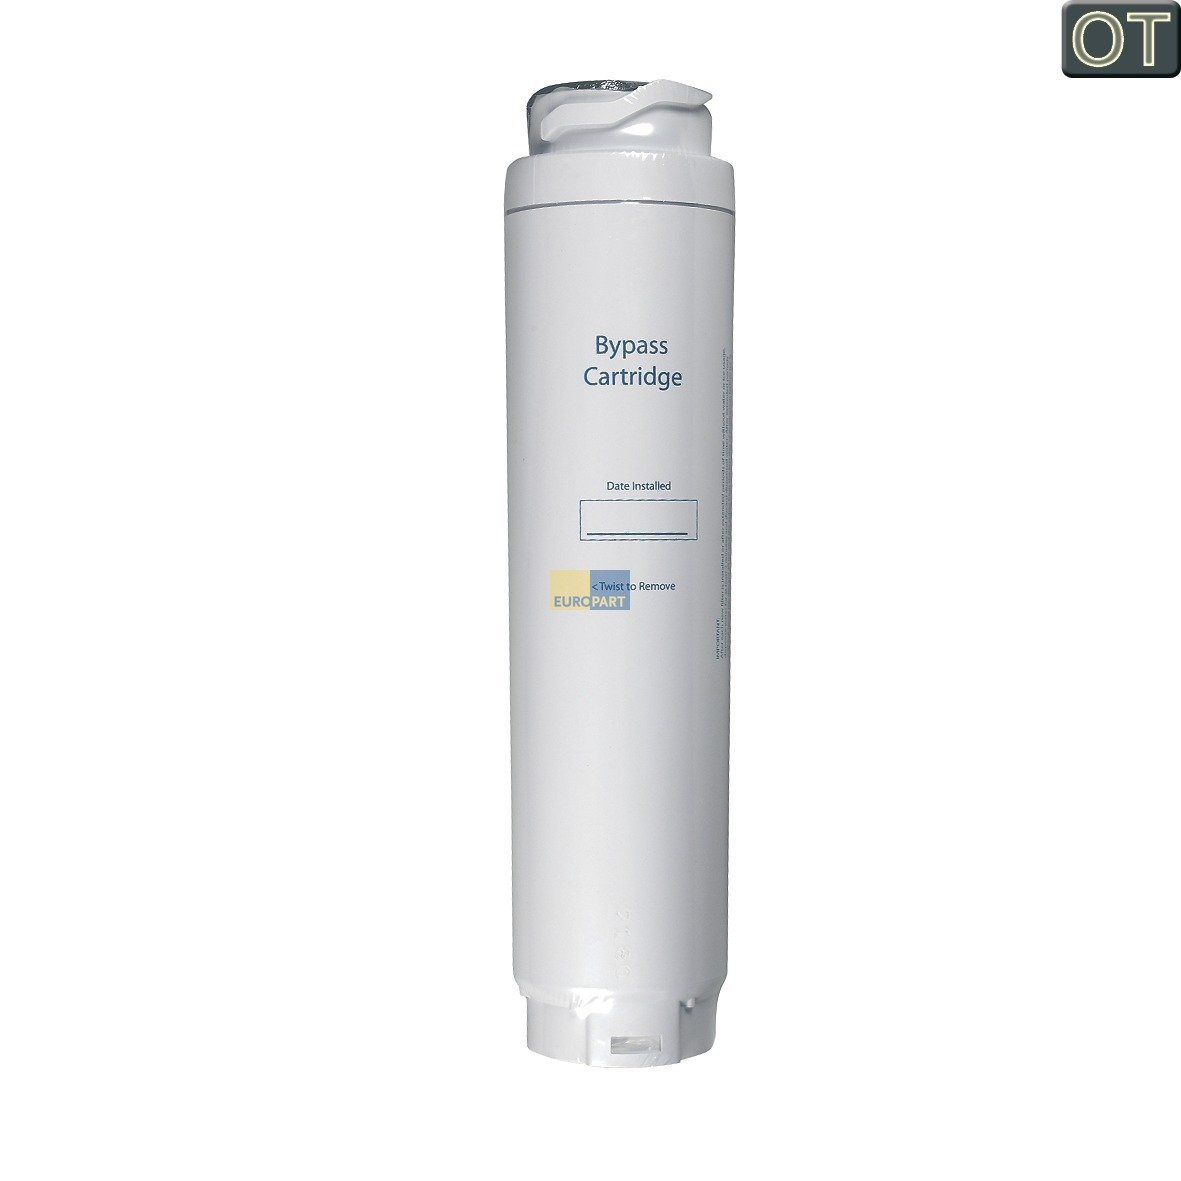 Bosch 53-WF-25BS Refrigerator Type Water Filter for Ultra Clarity Bypass Cartridge Maddocks B003CLBTRM